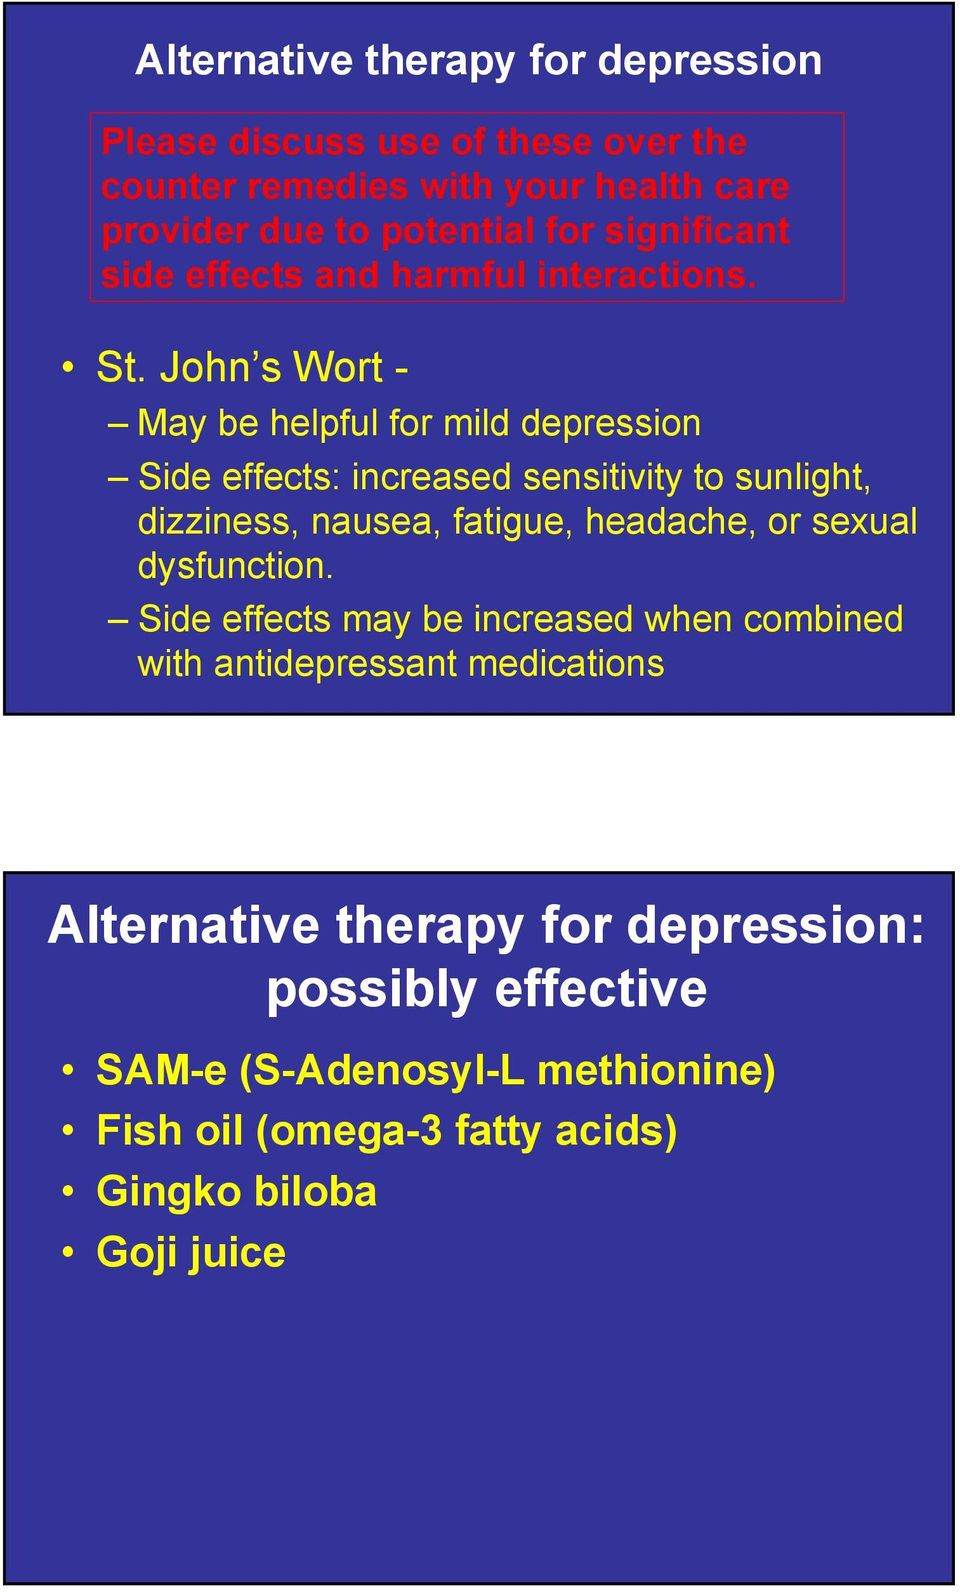 John s Wort - May be helpful for mild depression Side effects: increased sensitivity to sunlight, dizziness, nausea, fatigue, headache, or